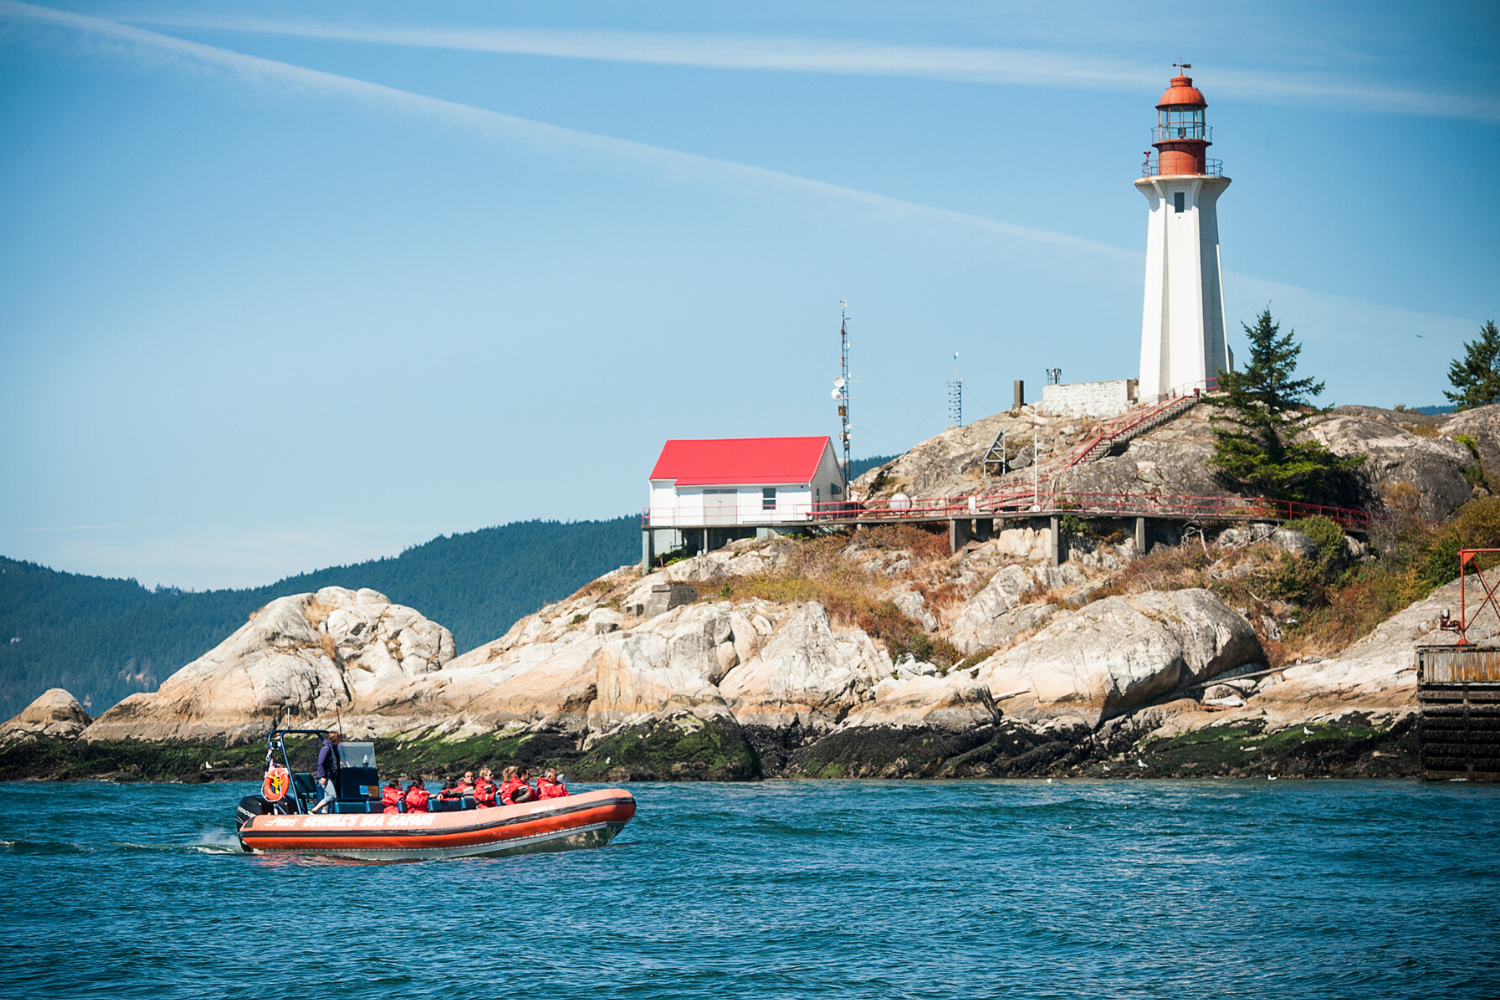 Sea Safari tour taking in the Pt. Atkinson Lighthouse at the entrance to Vancouver Harbour